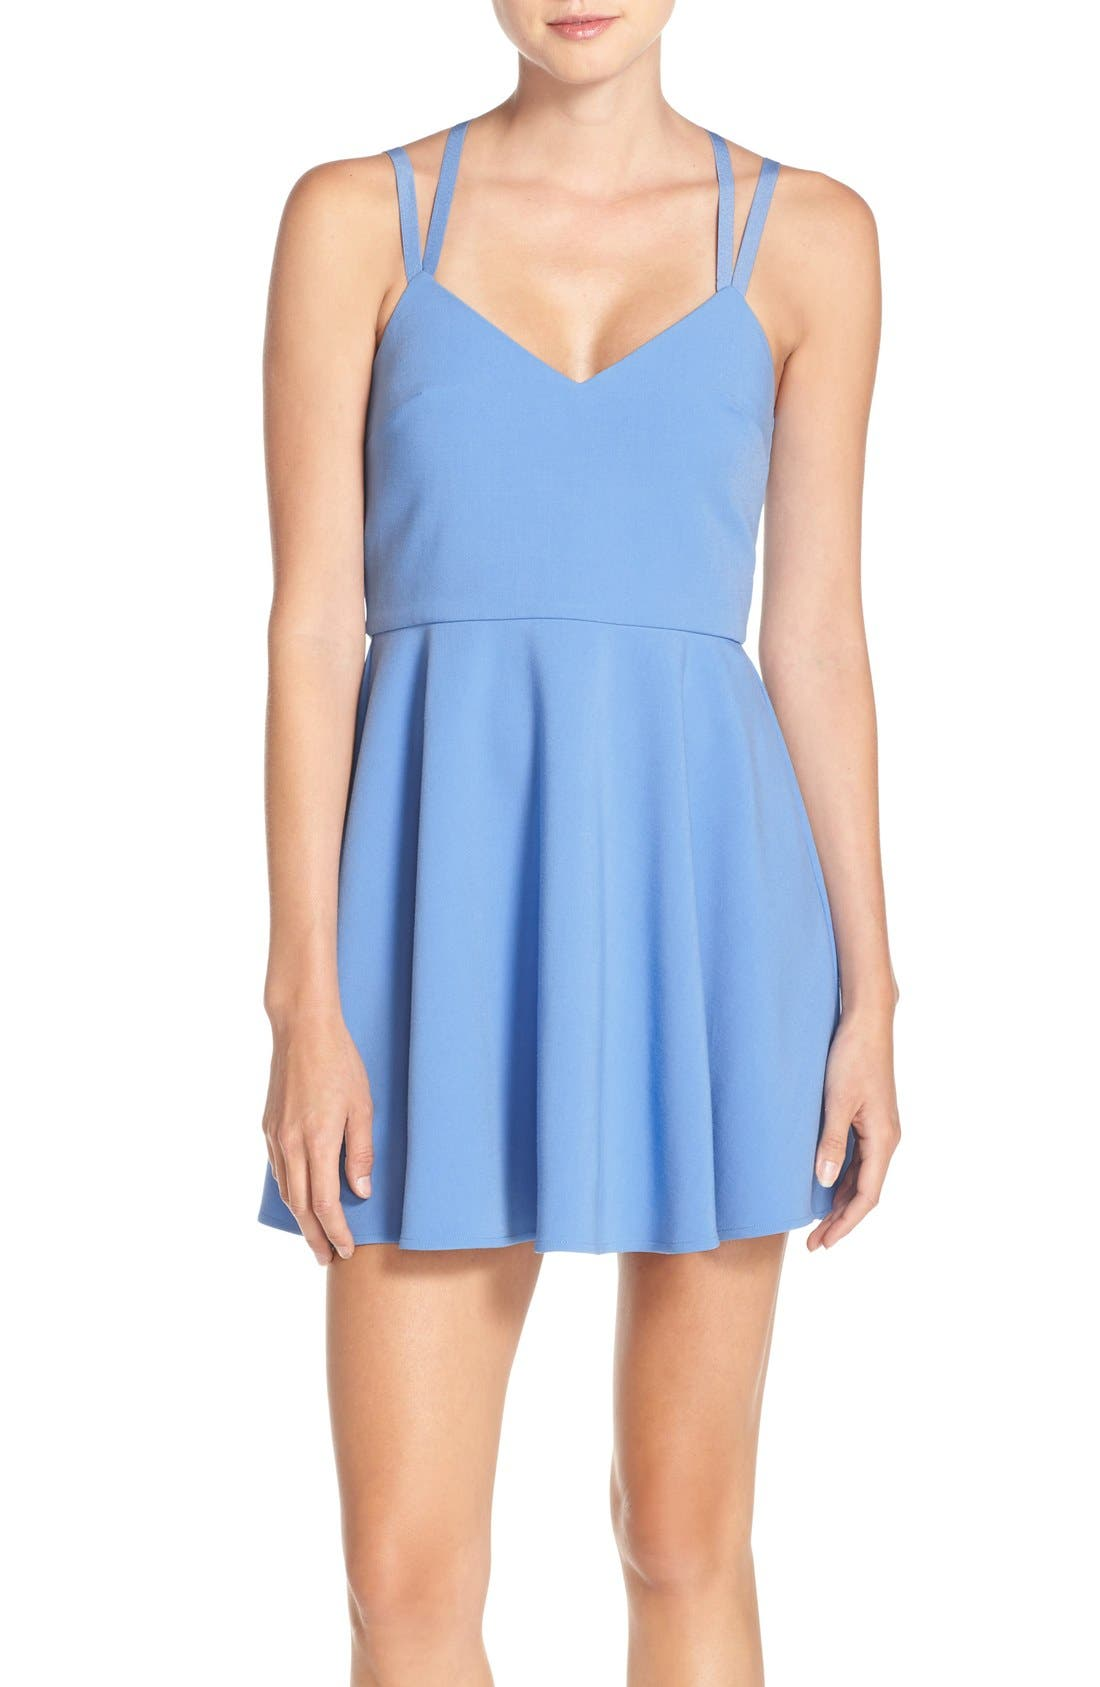 Main Image - French Connection 'Whisper' Strappy Skater Dress